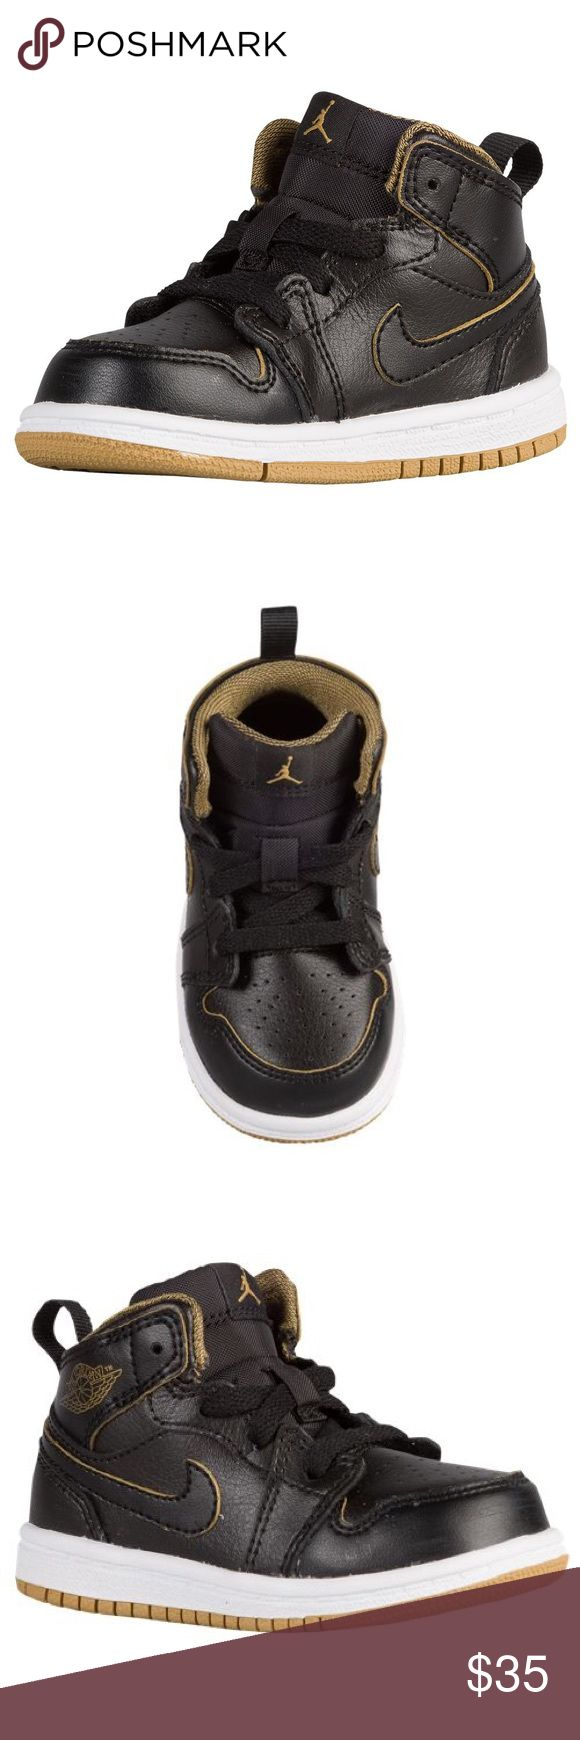 JORDAN AJ1 MID Toddler Only worn a few times. Great condition!! Combination of leather and synthetic materials in the upper to deliver a supportive fit. Cushioned, supportive comfort with a protective cupsole construction and solid rubber outsole that delivers traction. Jordan Shoes Sneakers